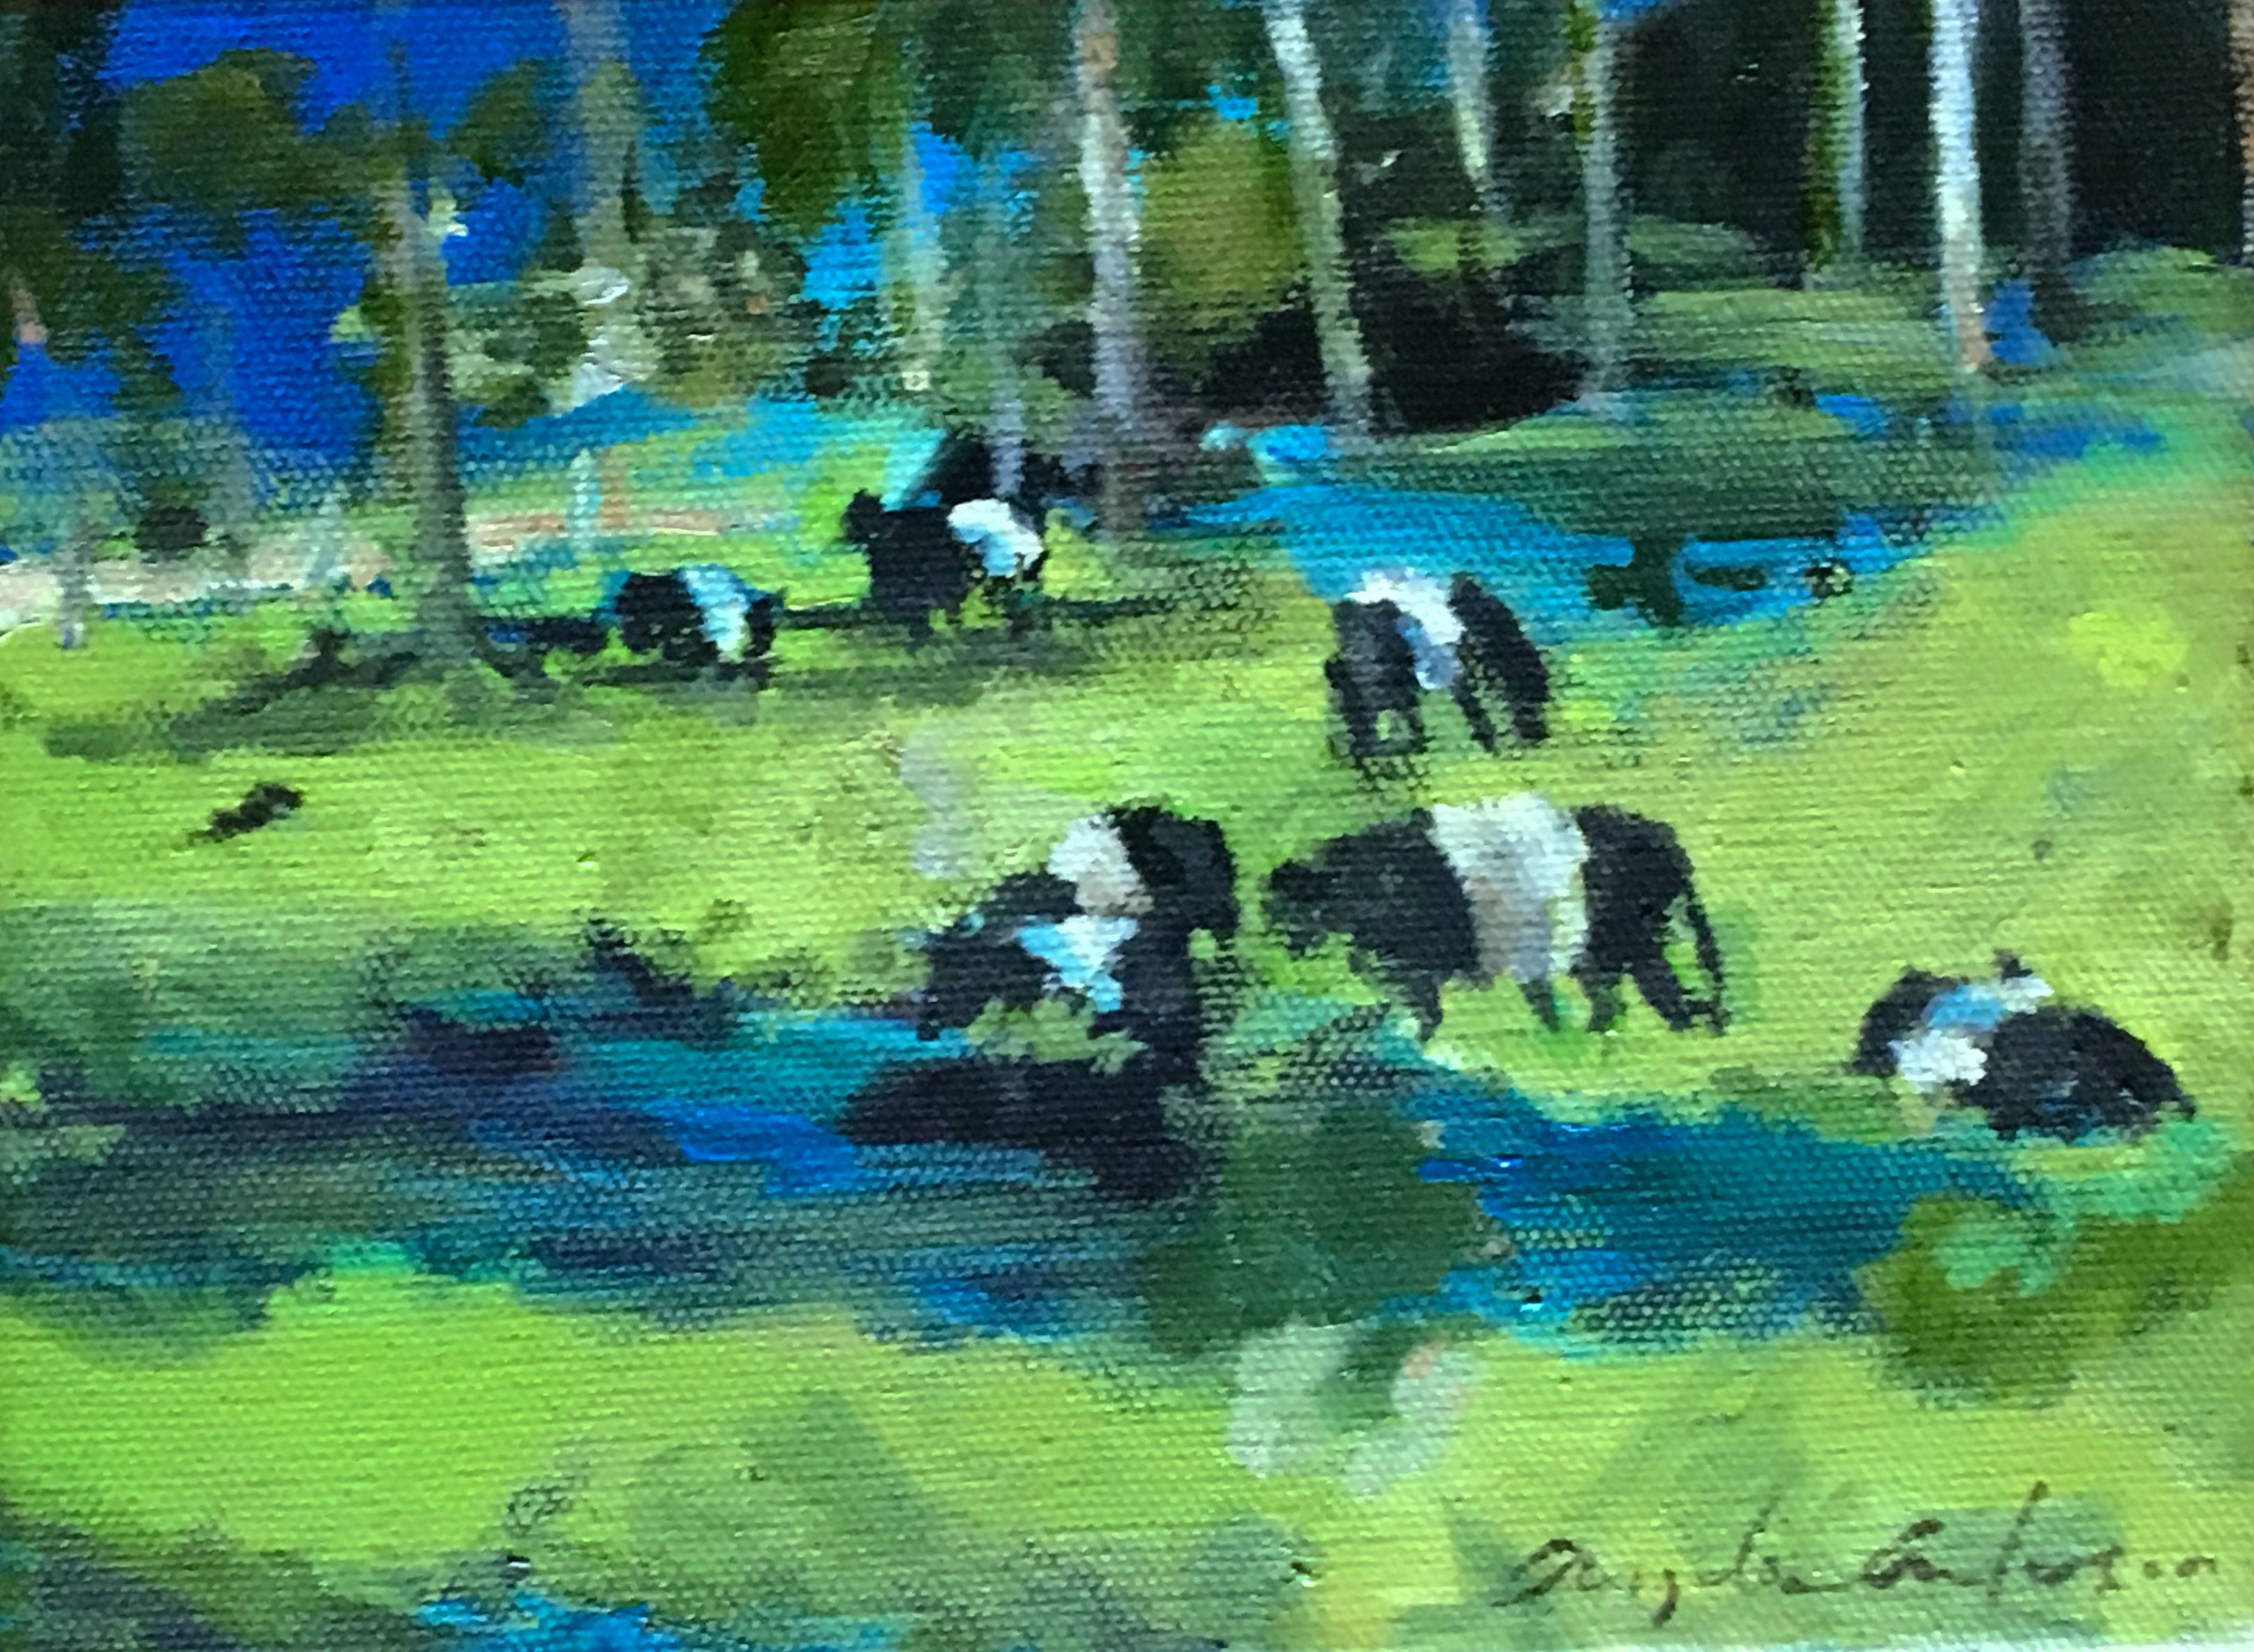 Belted Galloways, private collection